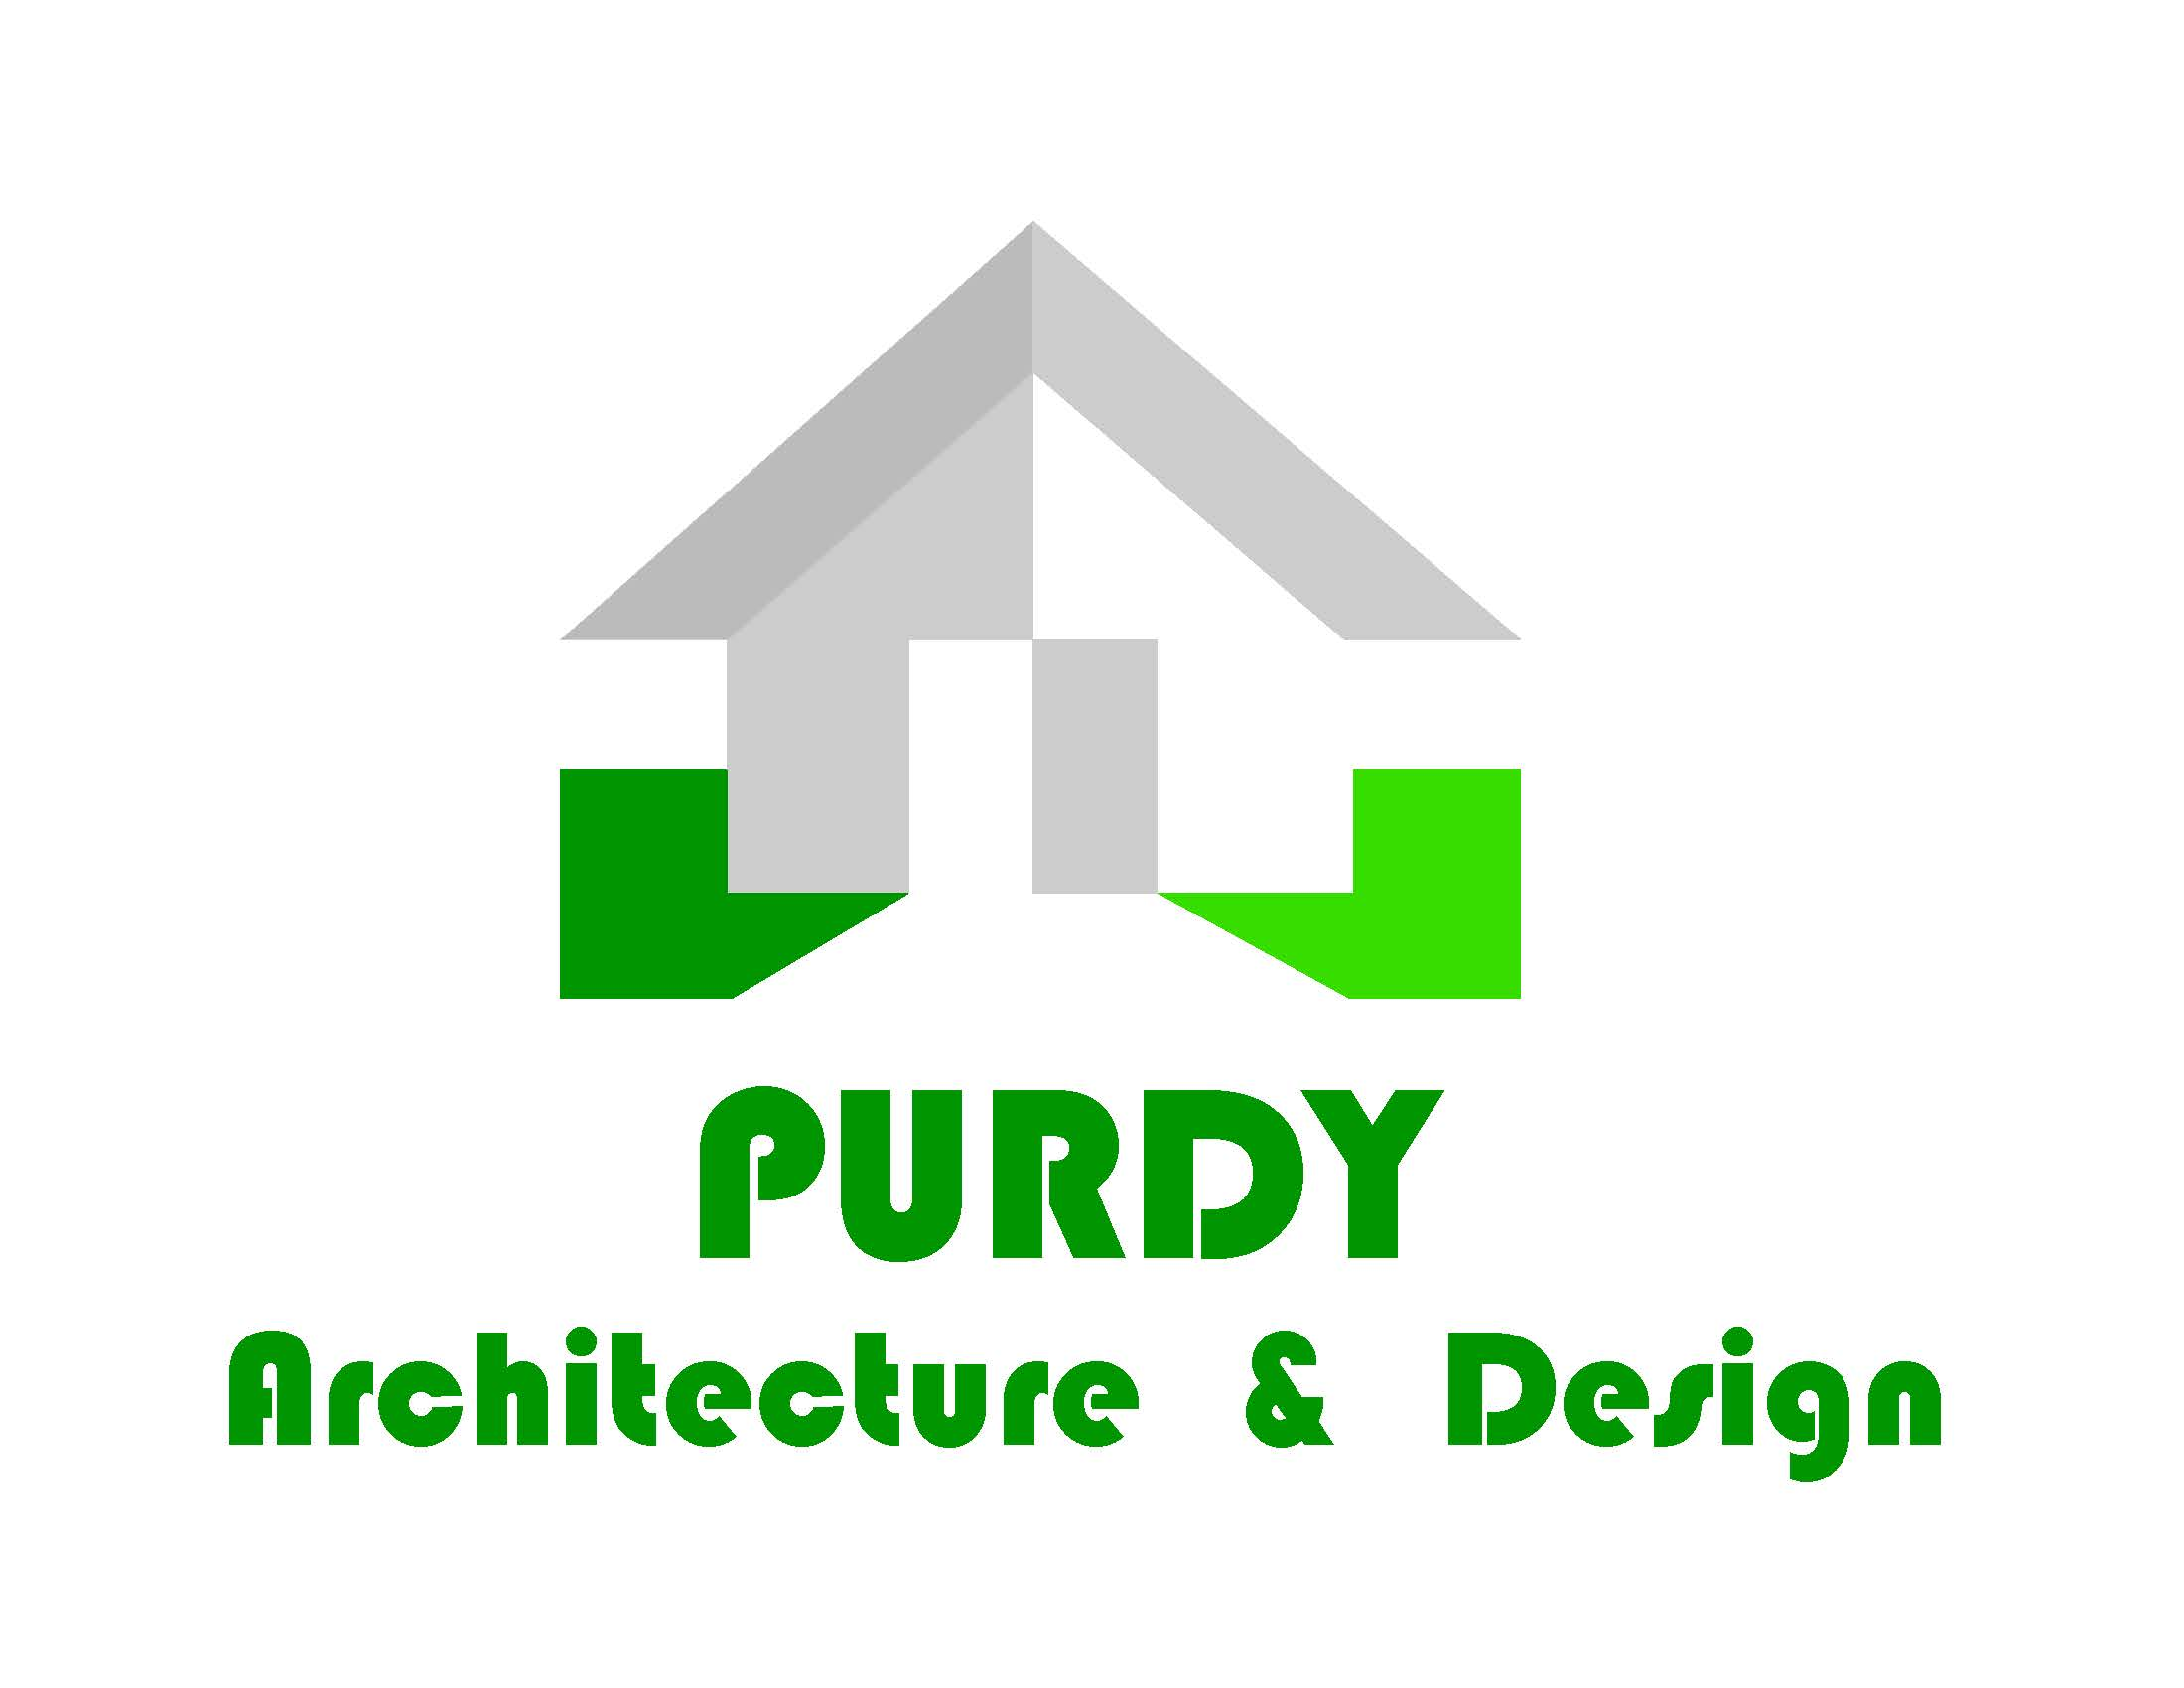 Miller Purdy Architects